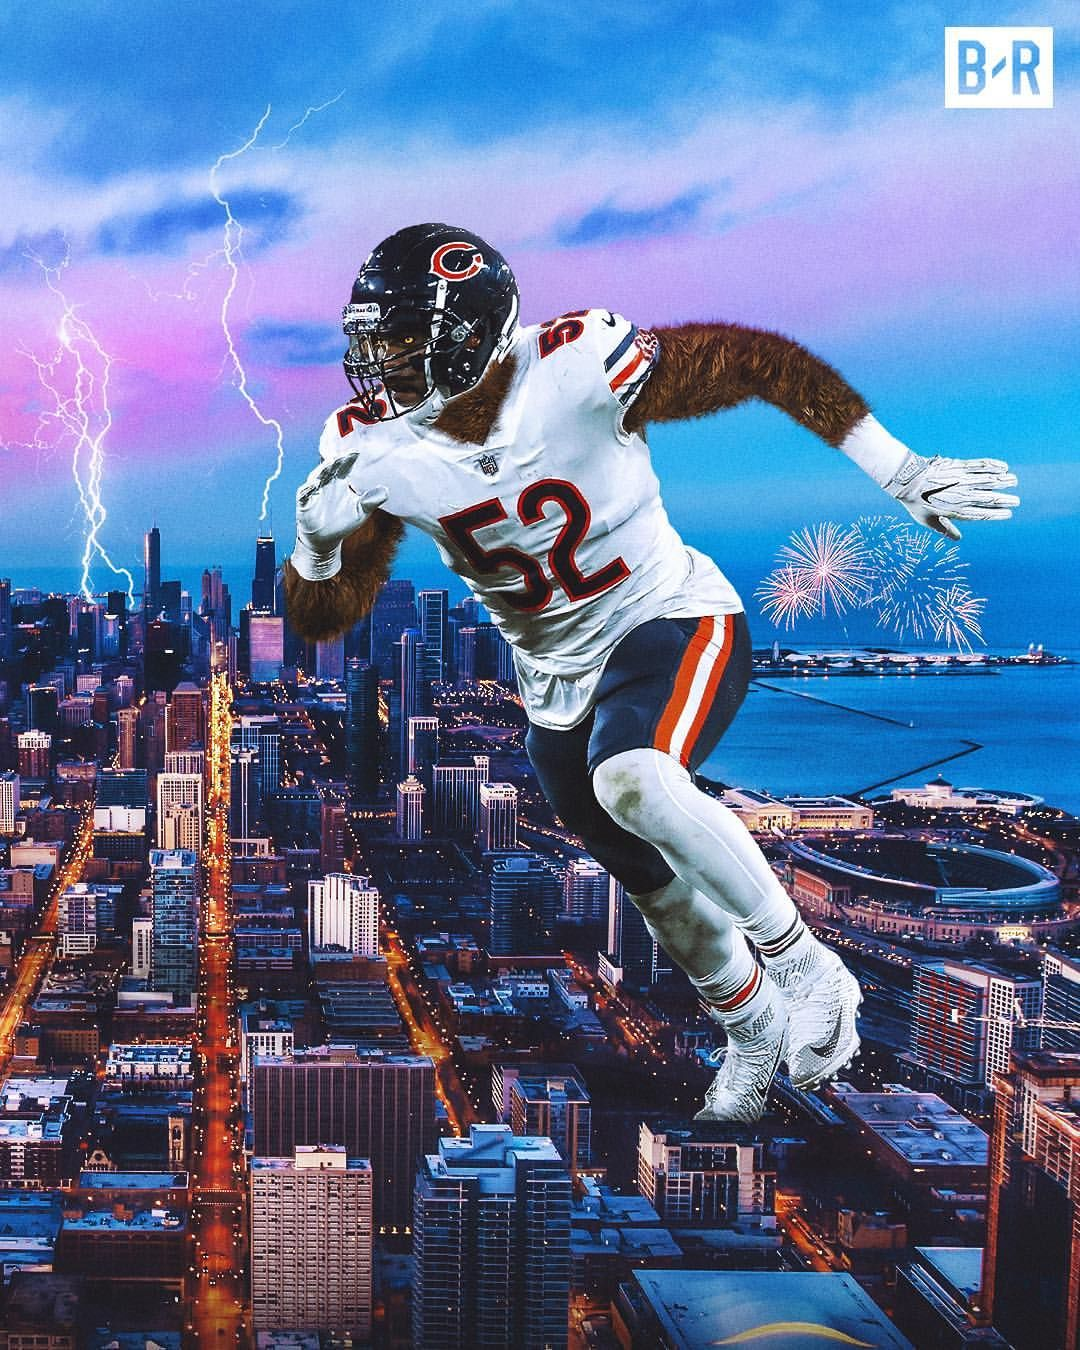 A Sack Fumble In Every Game This Season Khalil Mack Has Been A Terror Chicago Bears Pictures Chicago Bears Football Chicago Sports Teams